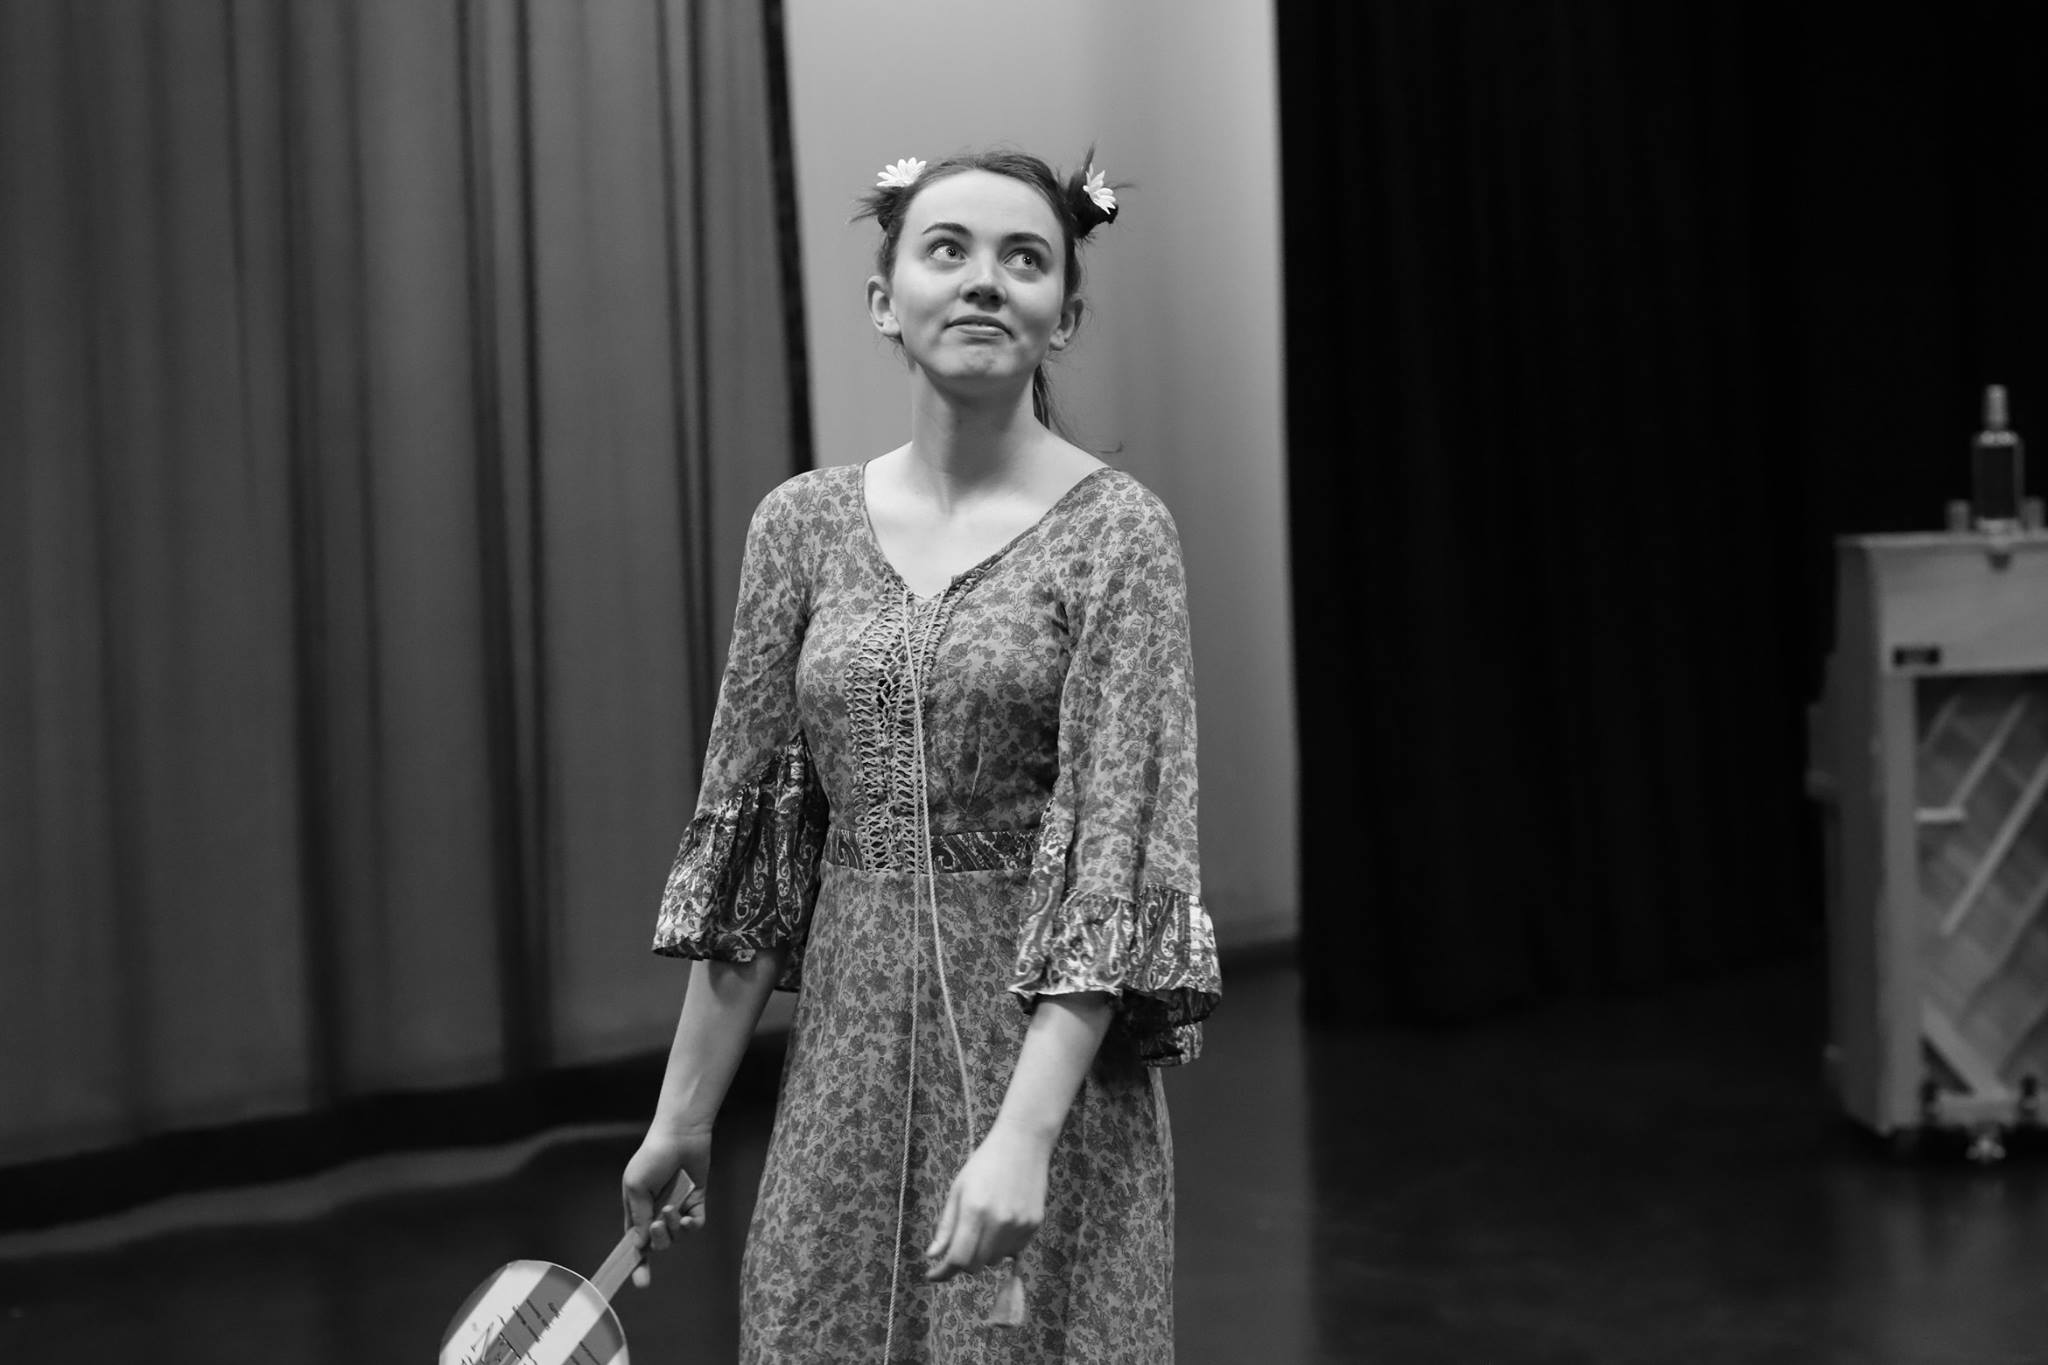 by Michael Frayn, adapted from an original play by Anton Chekhov.  I played SASHA, Platonov's wife.  directed by Gillian Eaton  UMich, February 2018